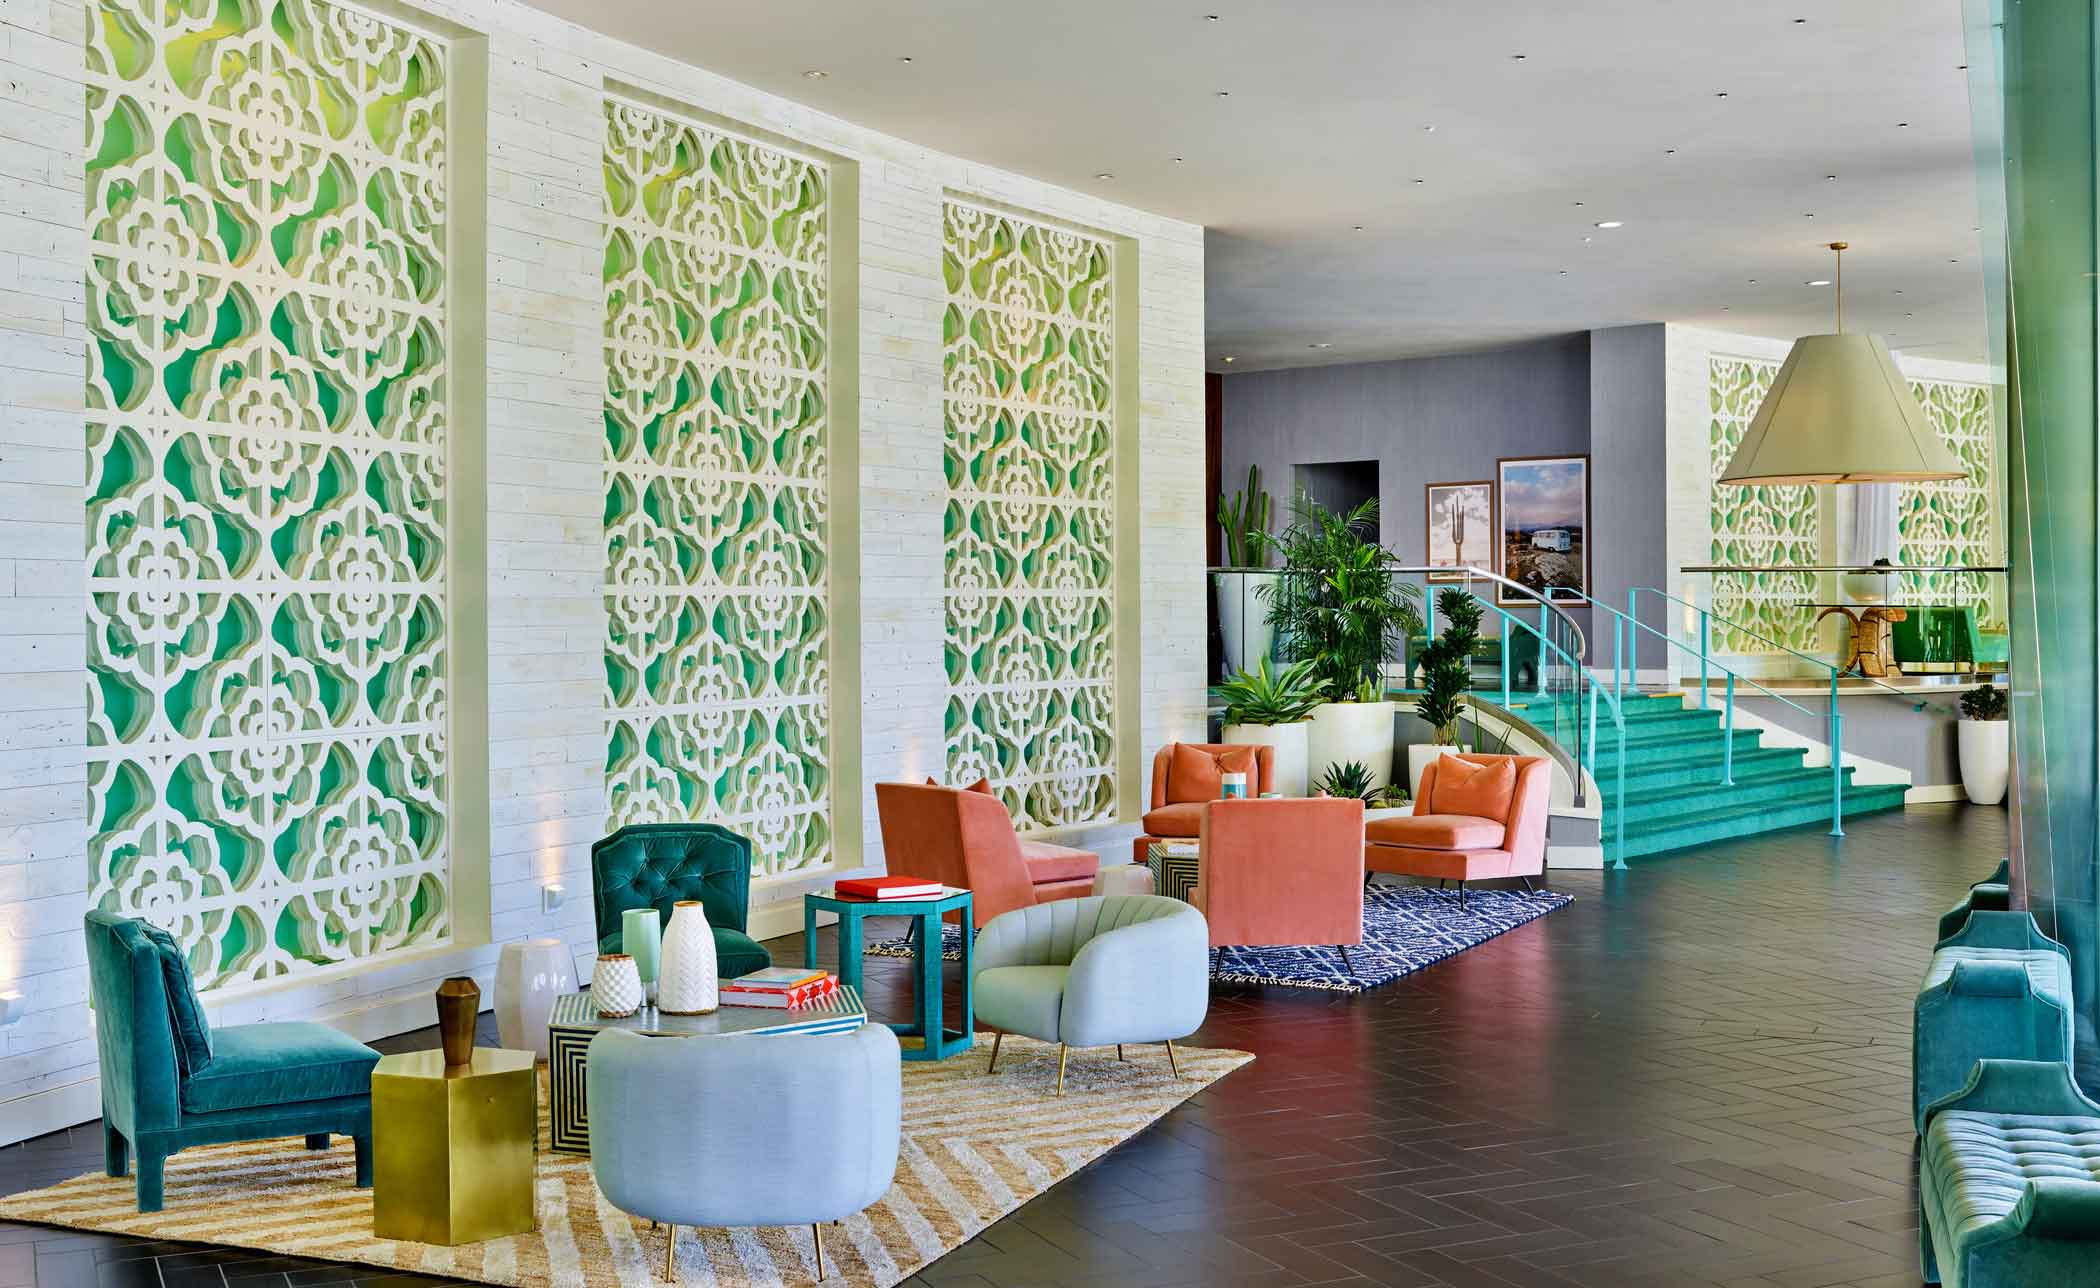 The riviera hotel review palm springs usa wallpaper for The riviera palm springs ca